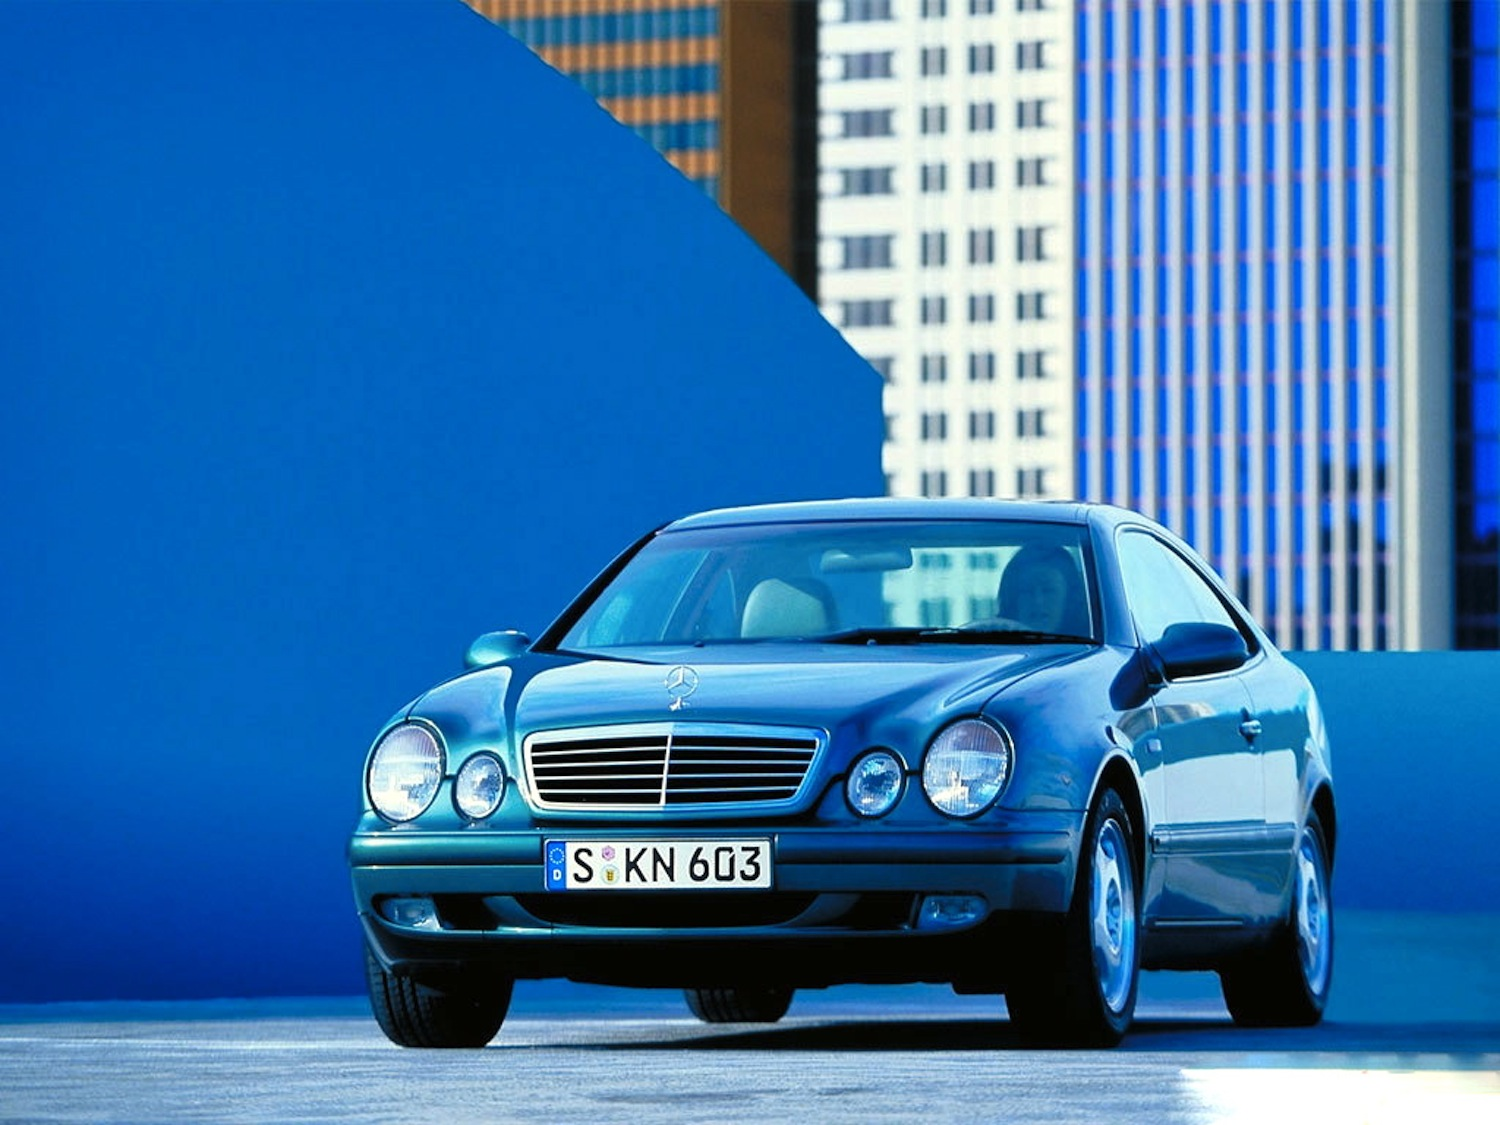 mercedes-benz-clk-320-w208-22